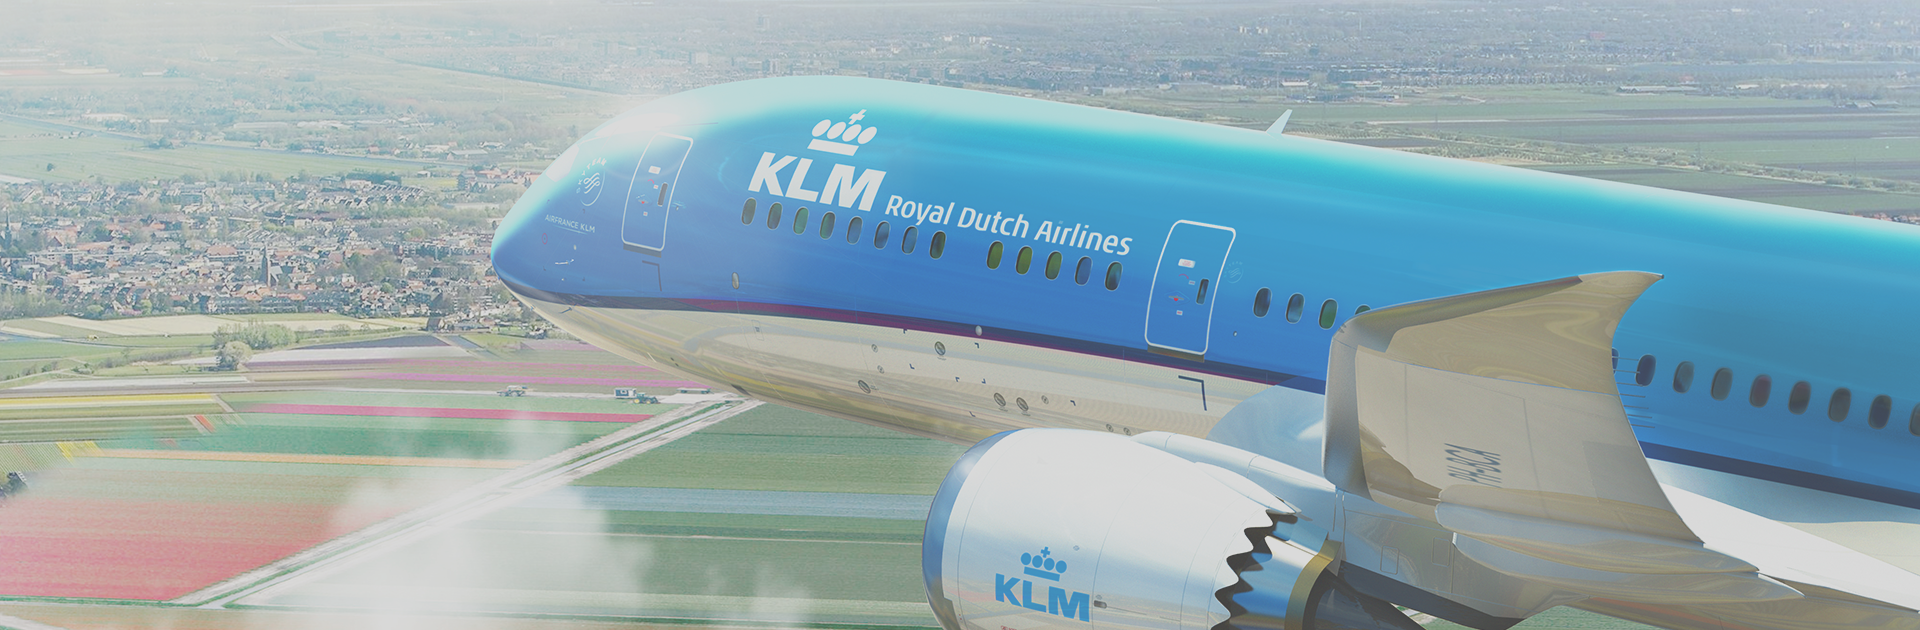 KLM Royal Dutch Airlines !